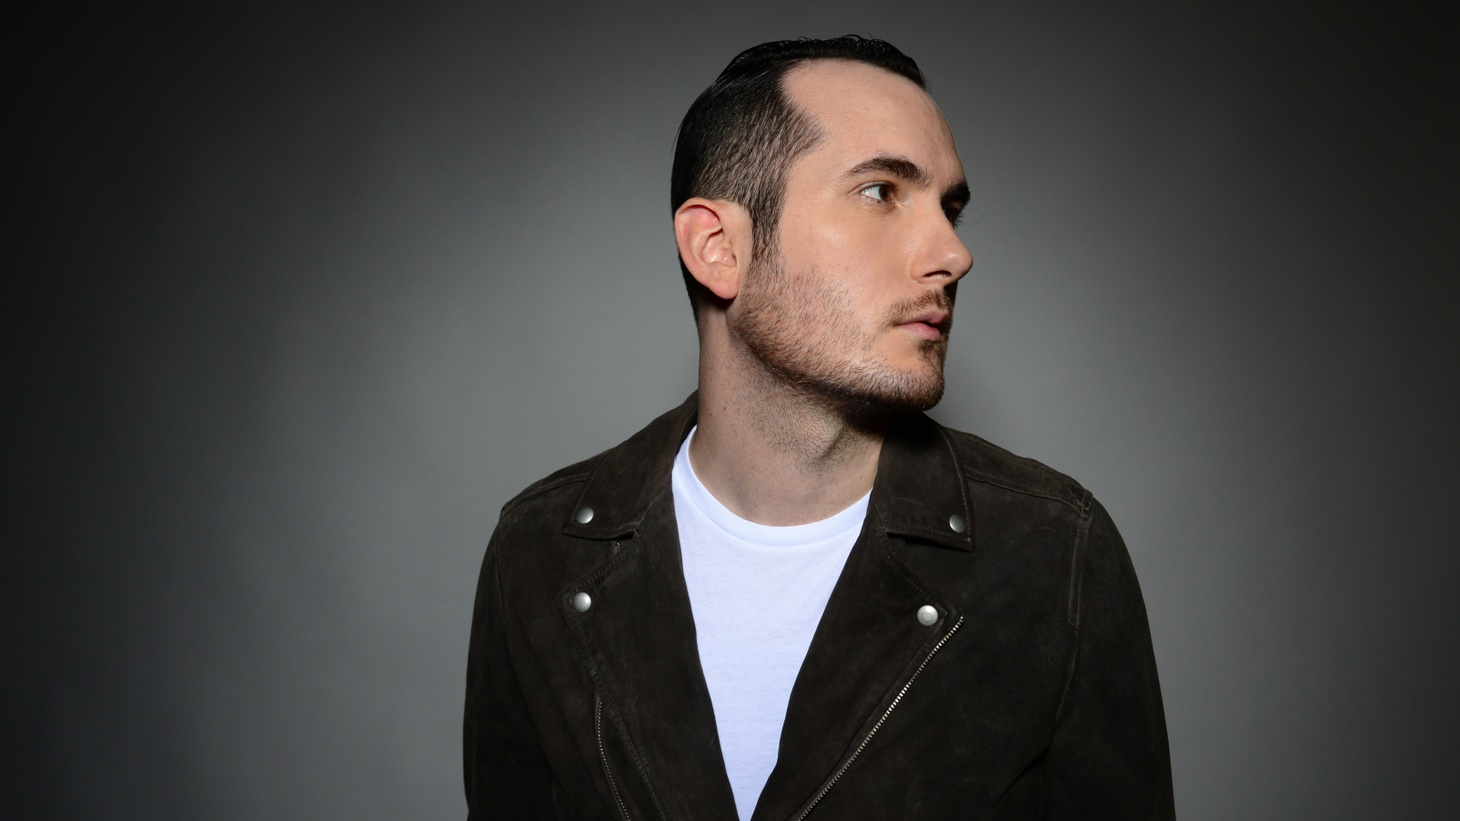 It took D.C. native Andrew Bayer five years to make his third album, but it may be his most defining work to date.